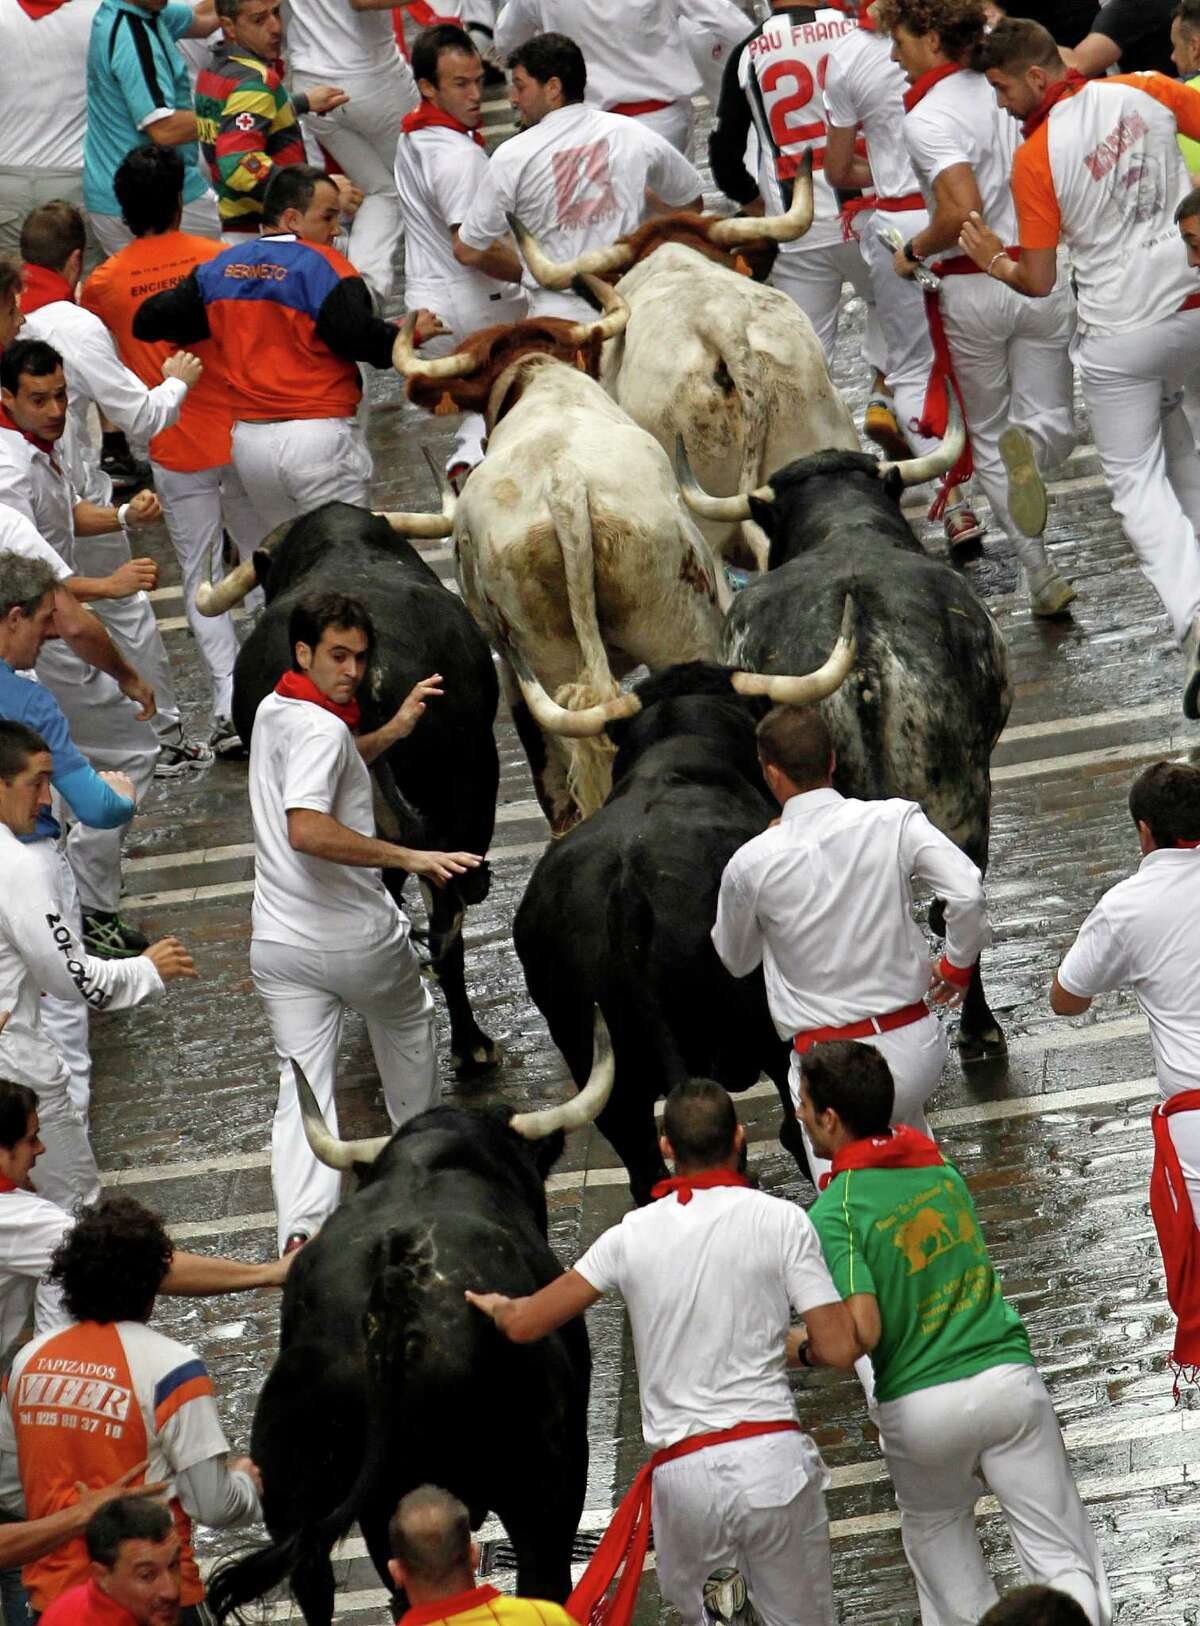 Revelers run with Dolores Aguirre Yabarra ranch fighting bulls.